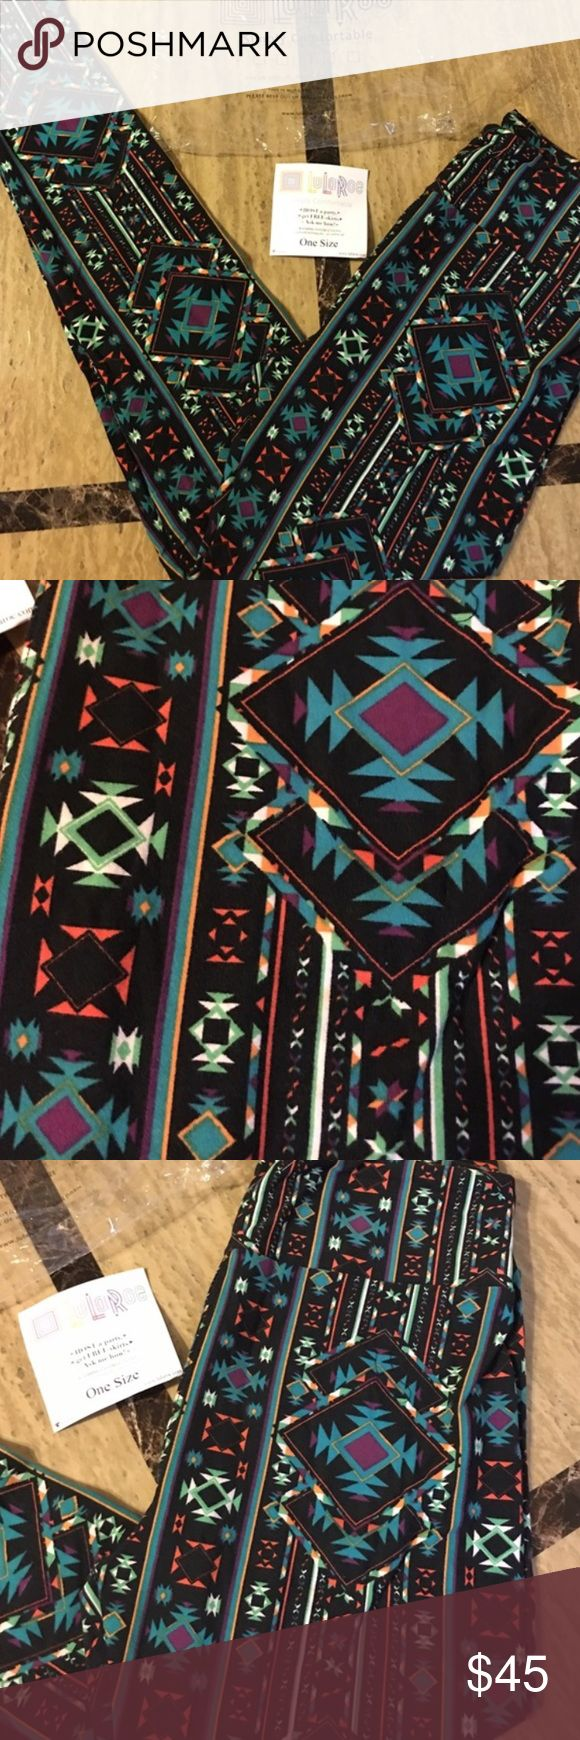 Lularoe black multi color Aztec print leggings OS Lularoe black multi color Aztec print leggings, women's one size fits size 0-10. Brand new with tags, buttery soft! Purchased from another posher but I need a bigger size. Made in China LuLaRoe Pants Leggings